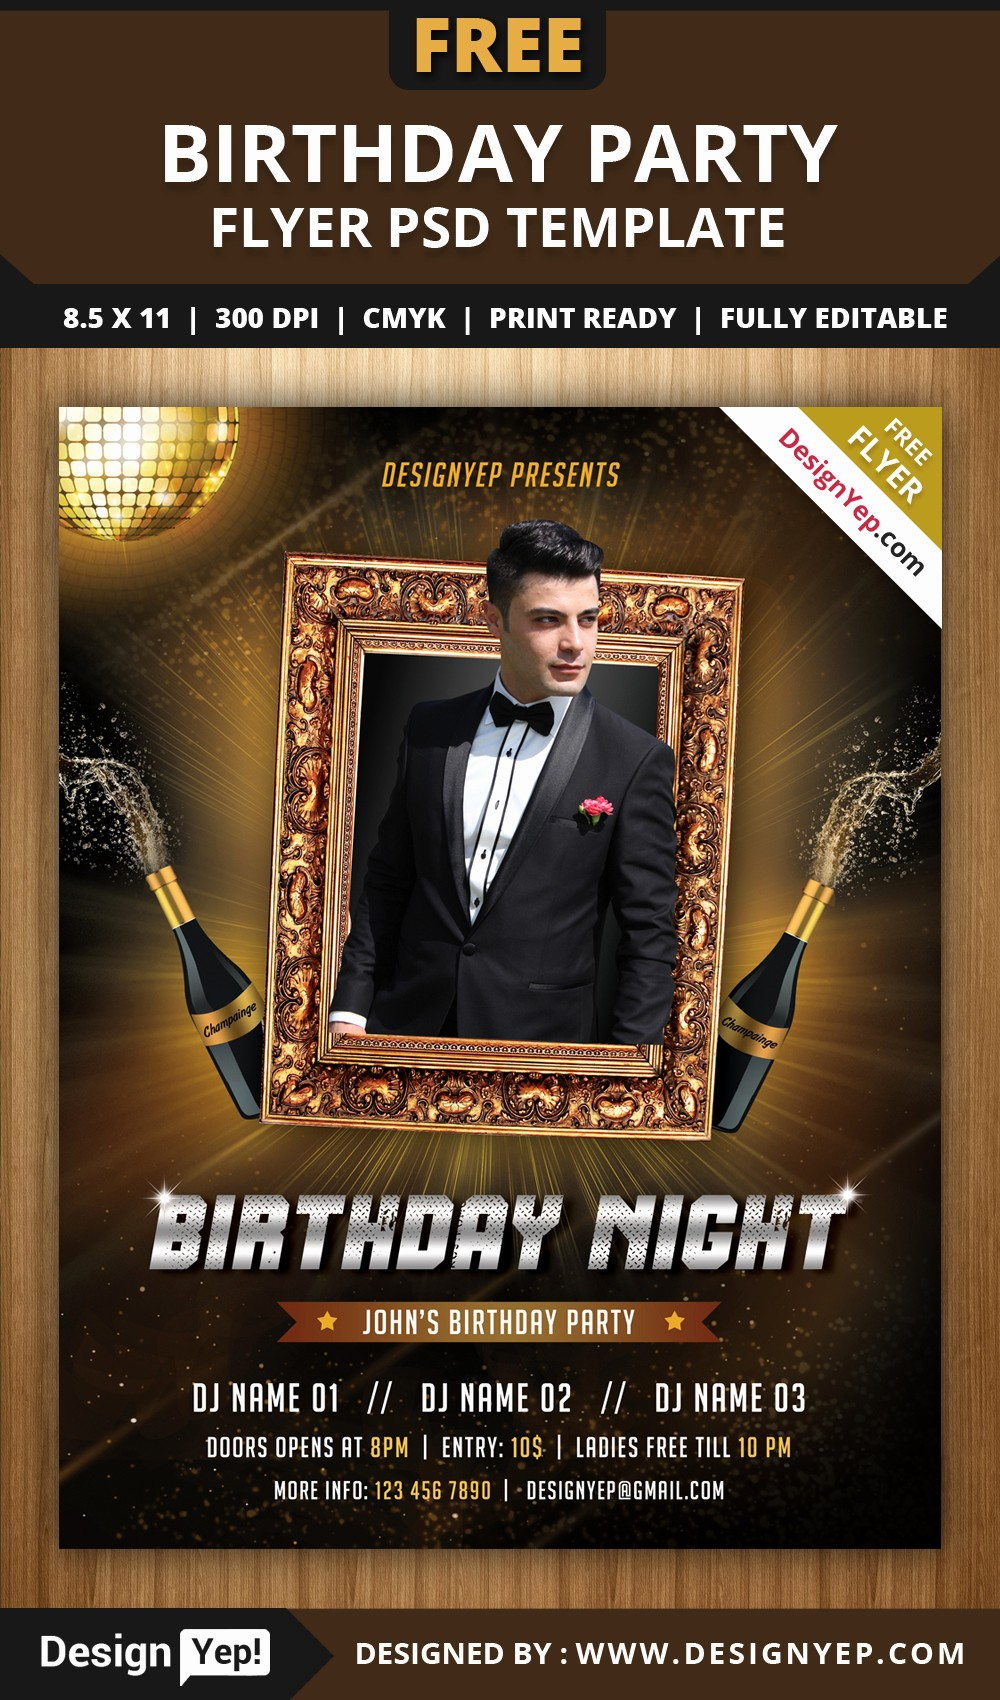 Birthday Party Flyer Template Free Elegant Free Birthday Party Flyer Psd Template Designyep